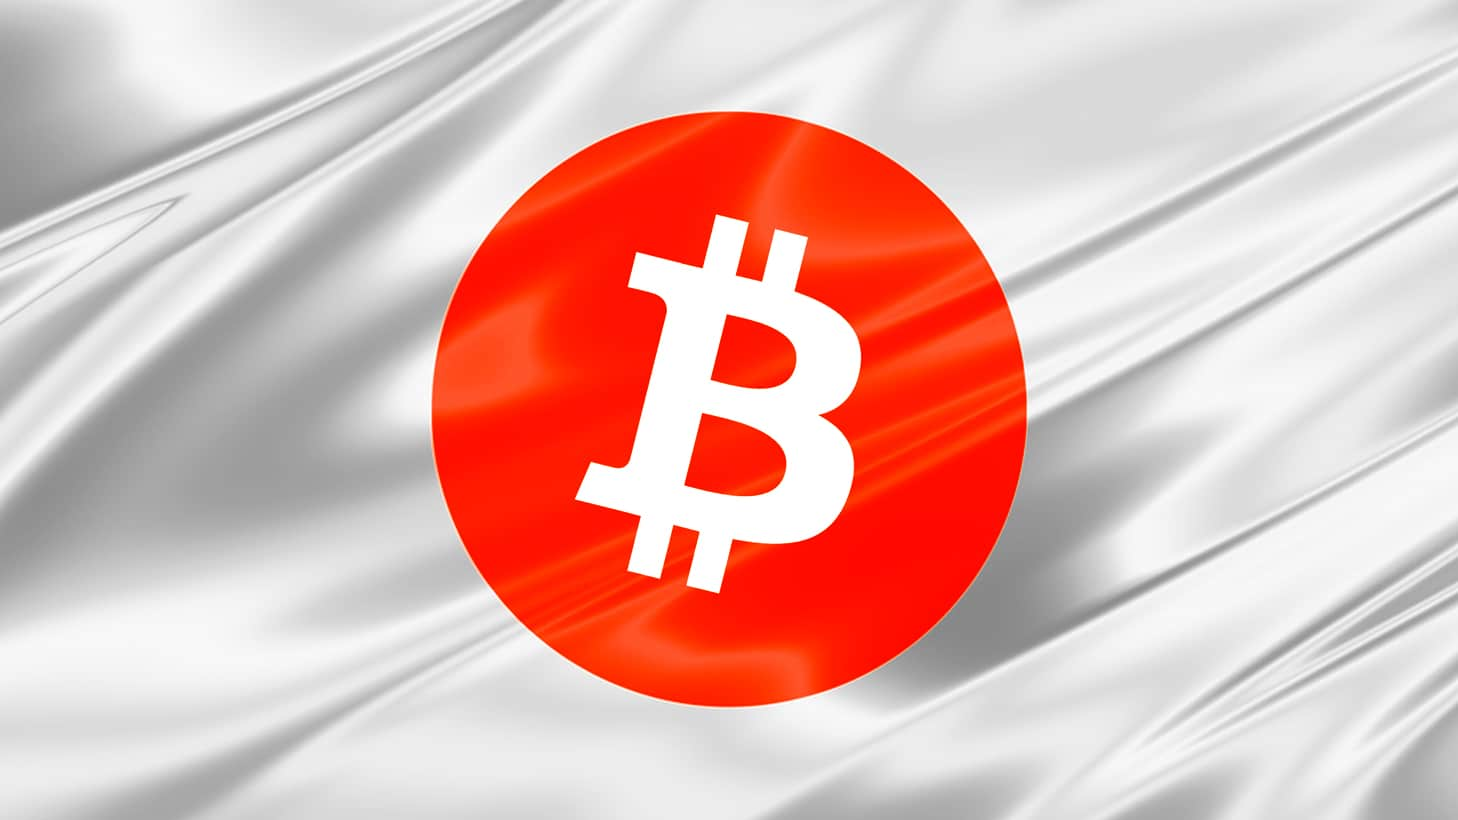 ICO in such jurisdiction as Japan